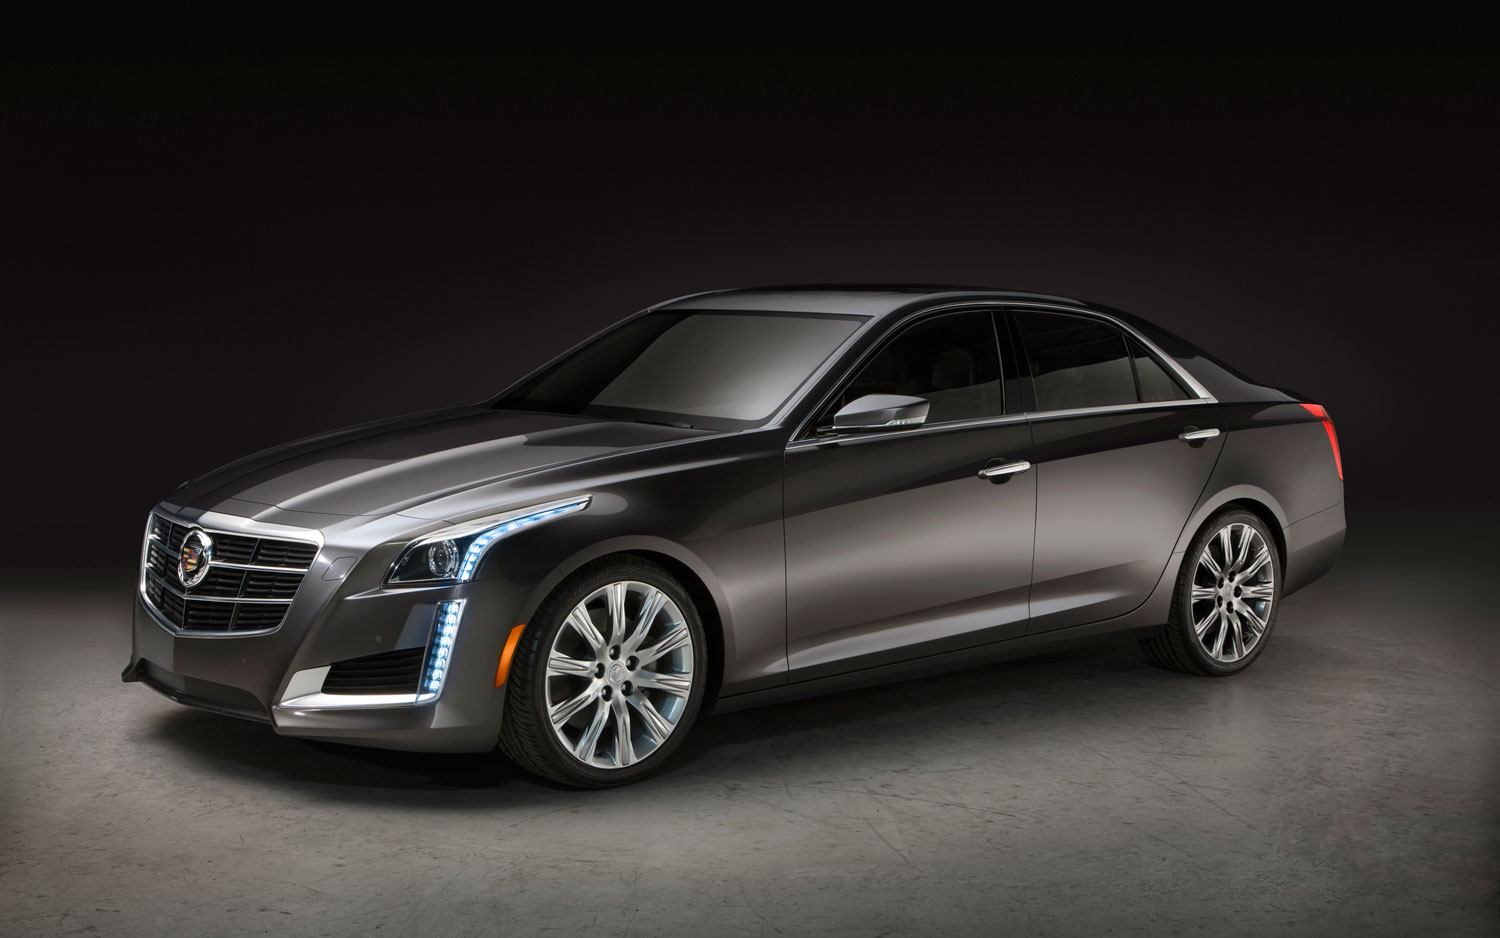 2014 Cadillac CTS Front Left Side View1